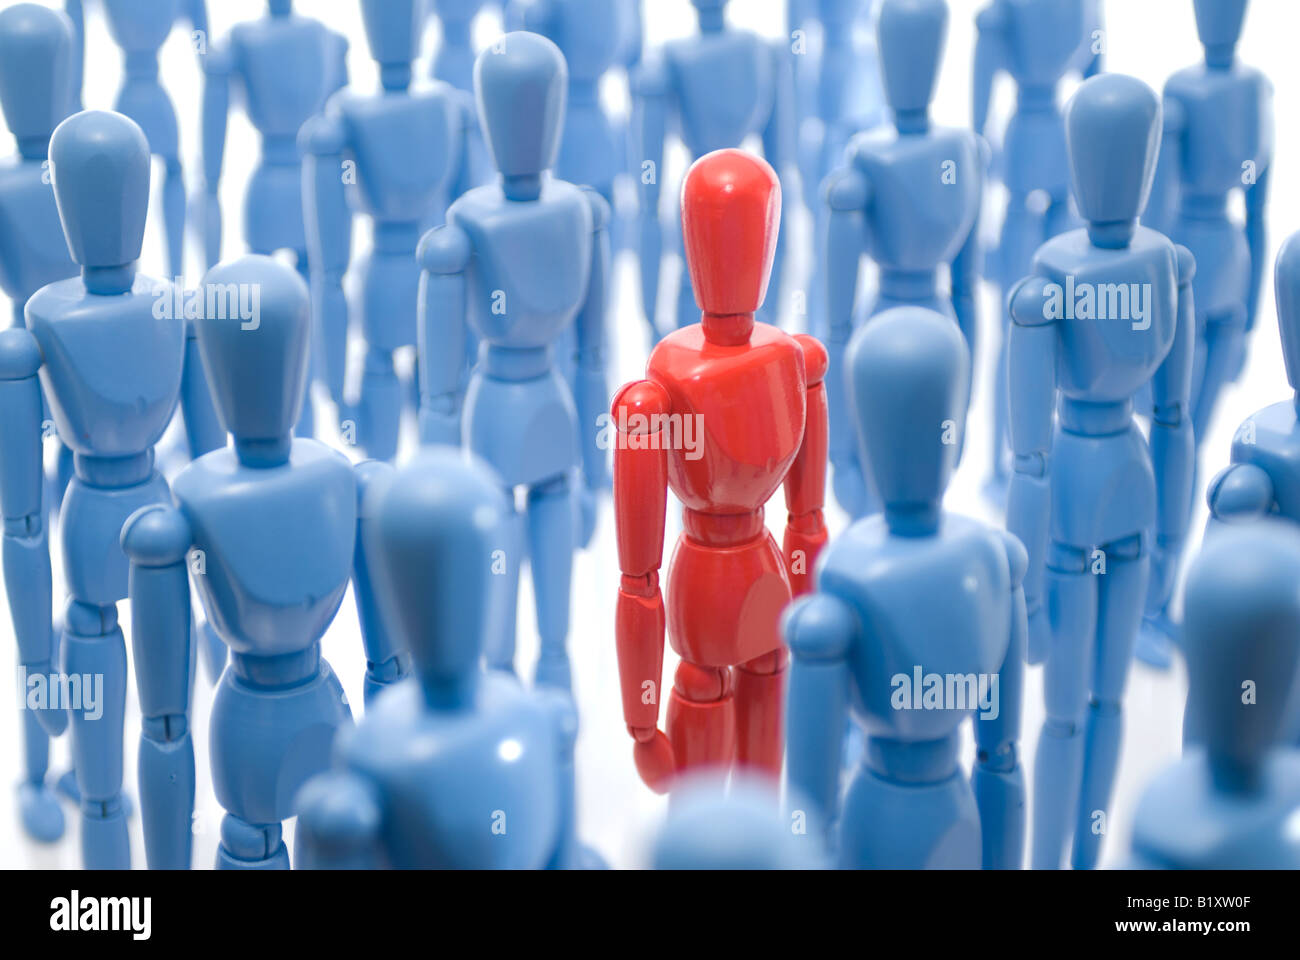 Standing out in the crowd. - Stock Image